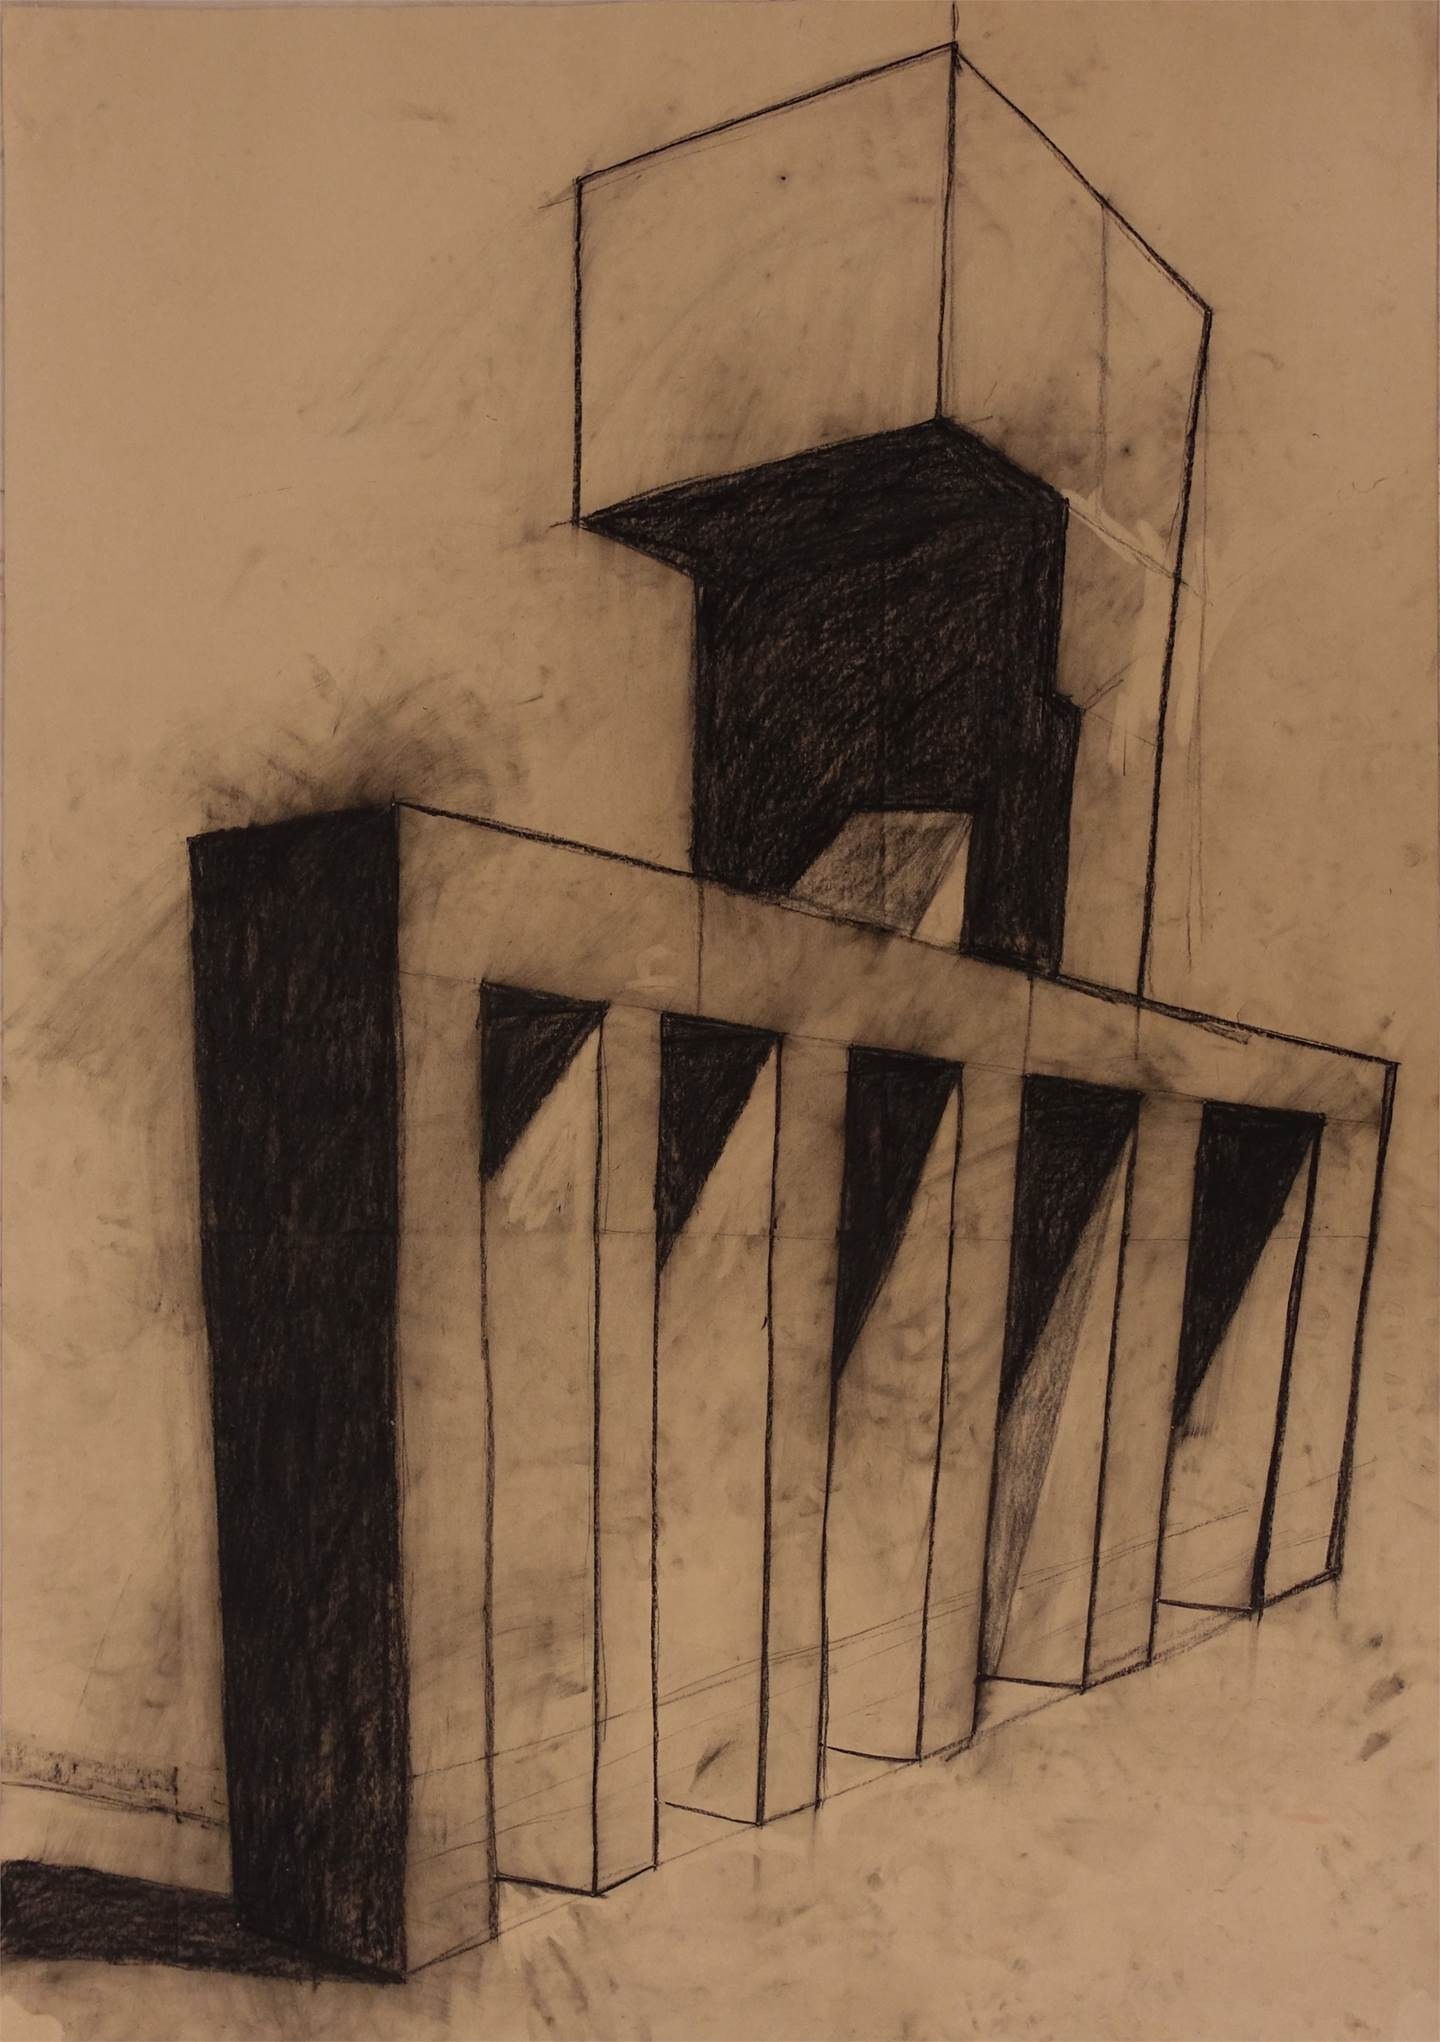 Industrial landscape, original Architecture Charcoal Drawing and Illustration by Lorenzo Bordonaro